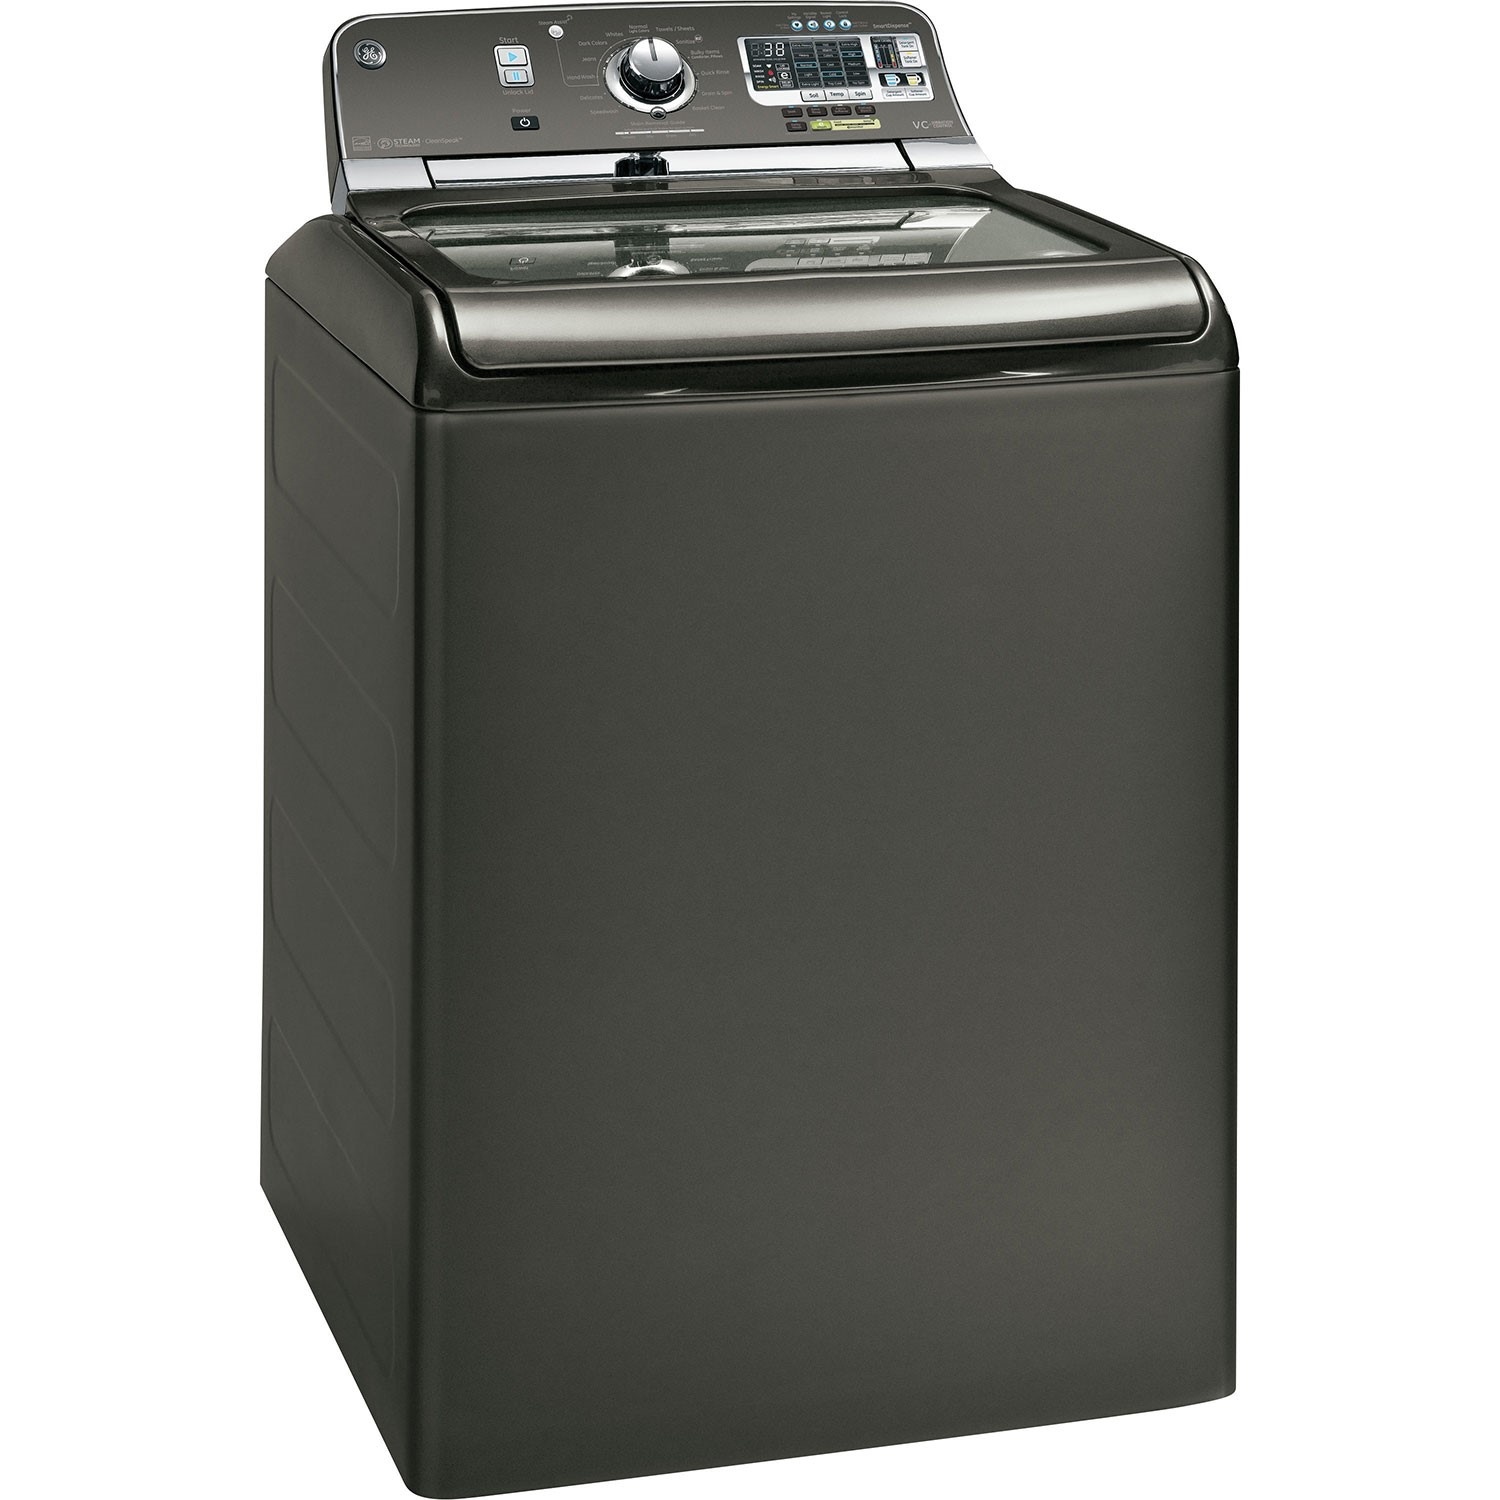 Washing Machine Buying Guide | Best Buy Blog